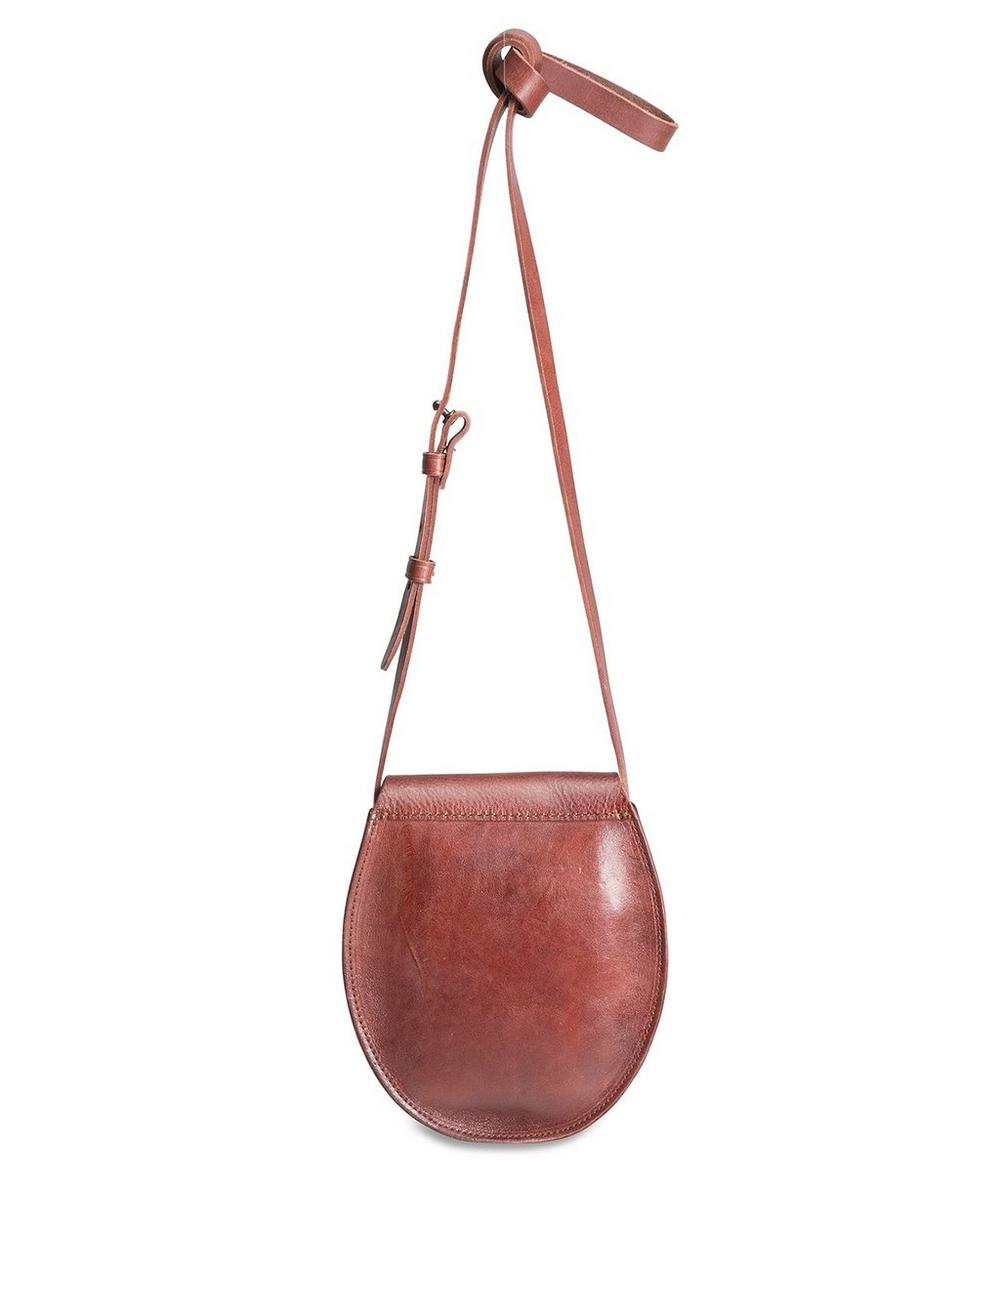 THE POINT FLAP CROSSBODY, image 3